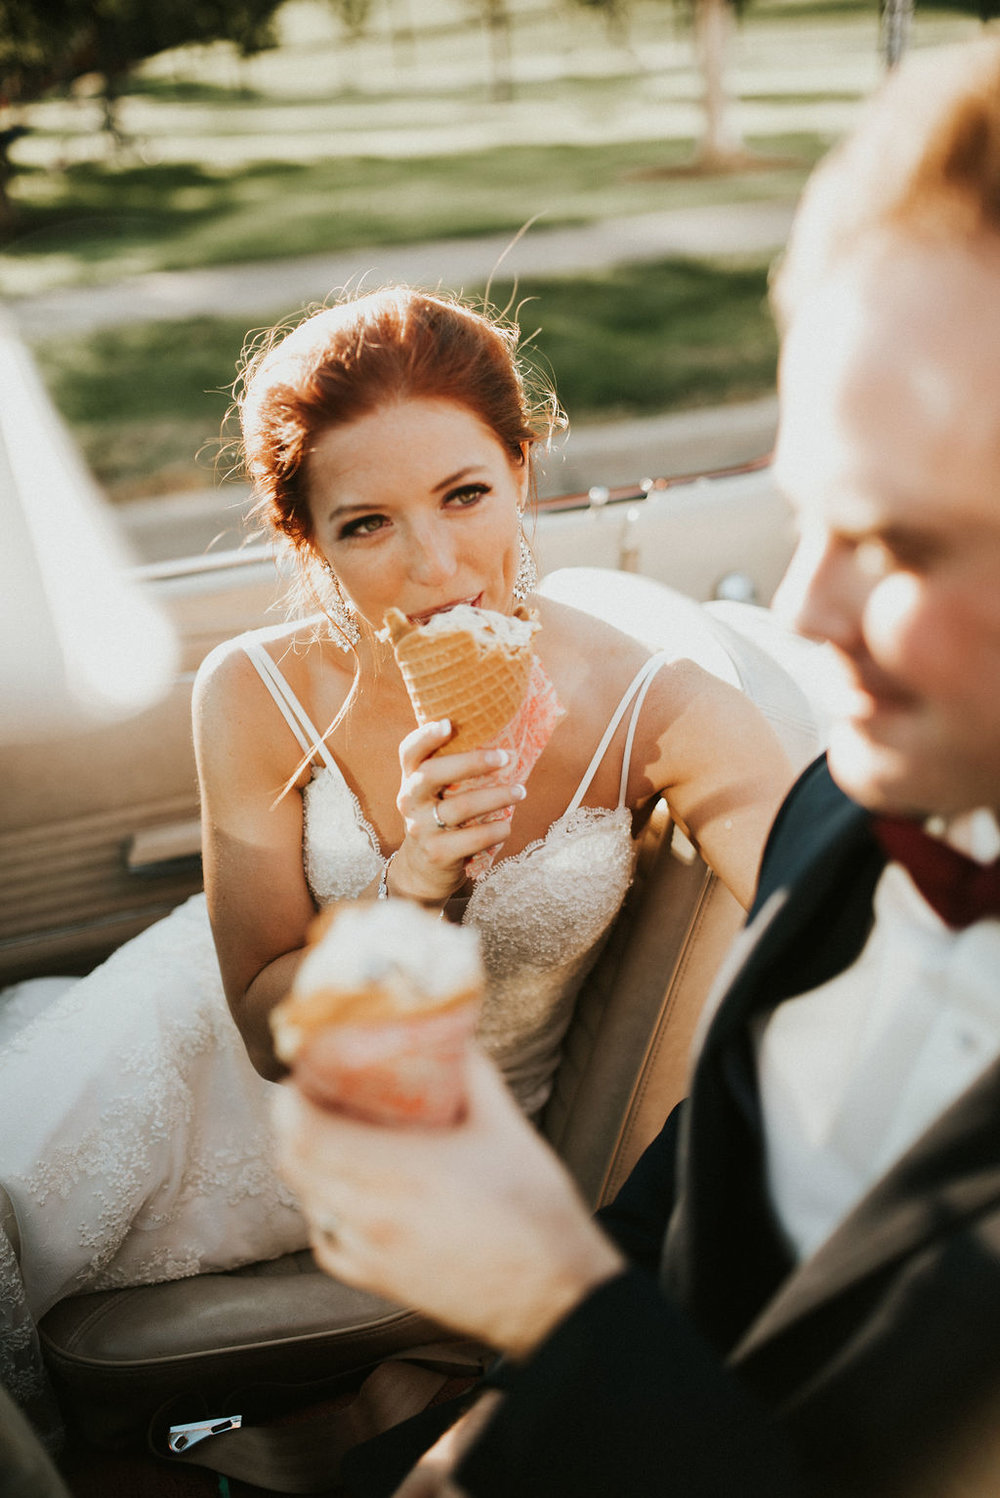 bride and groom ice cream stop during cocktail hour | Asher Marie Photography | Minneapolis day of coordinator | Muse wedding downtown.jpg